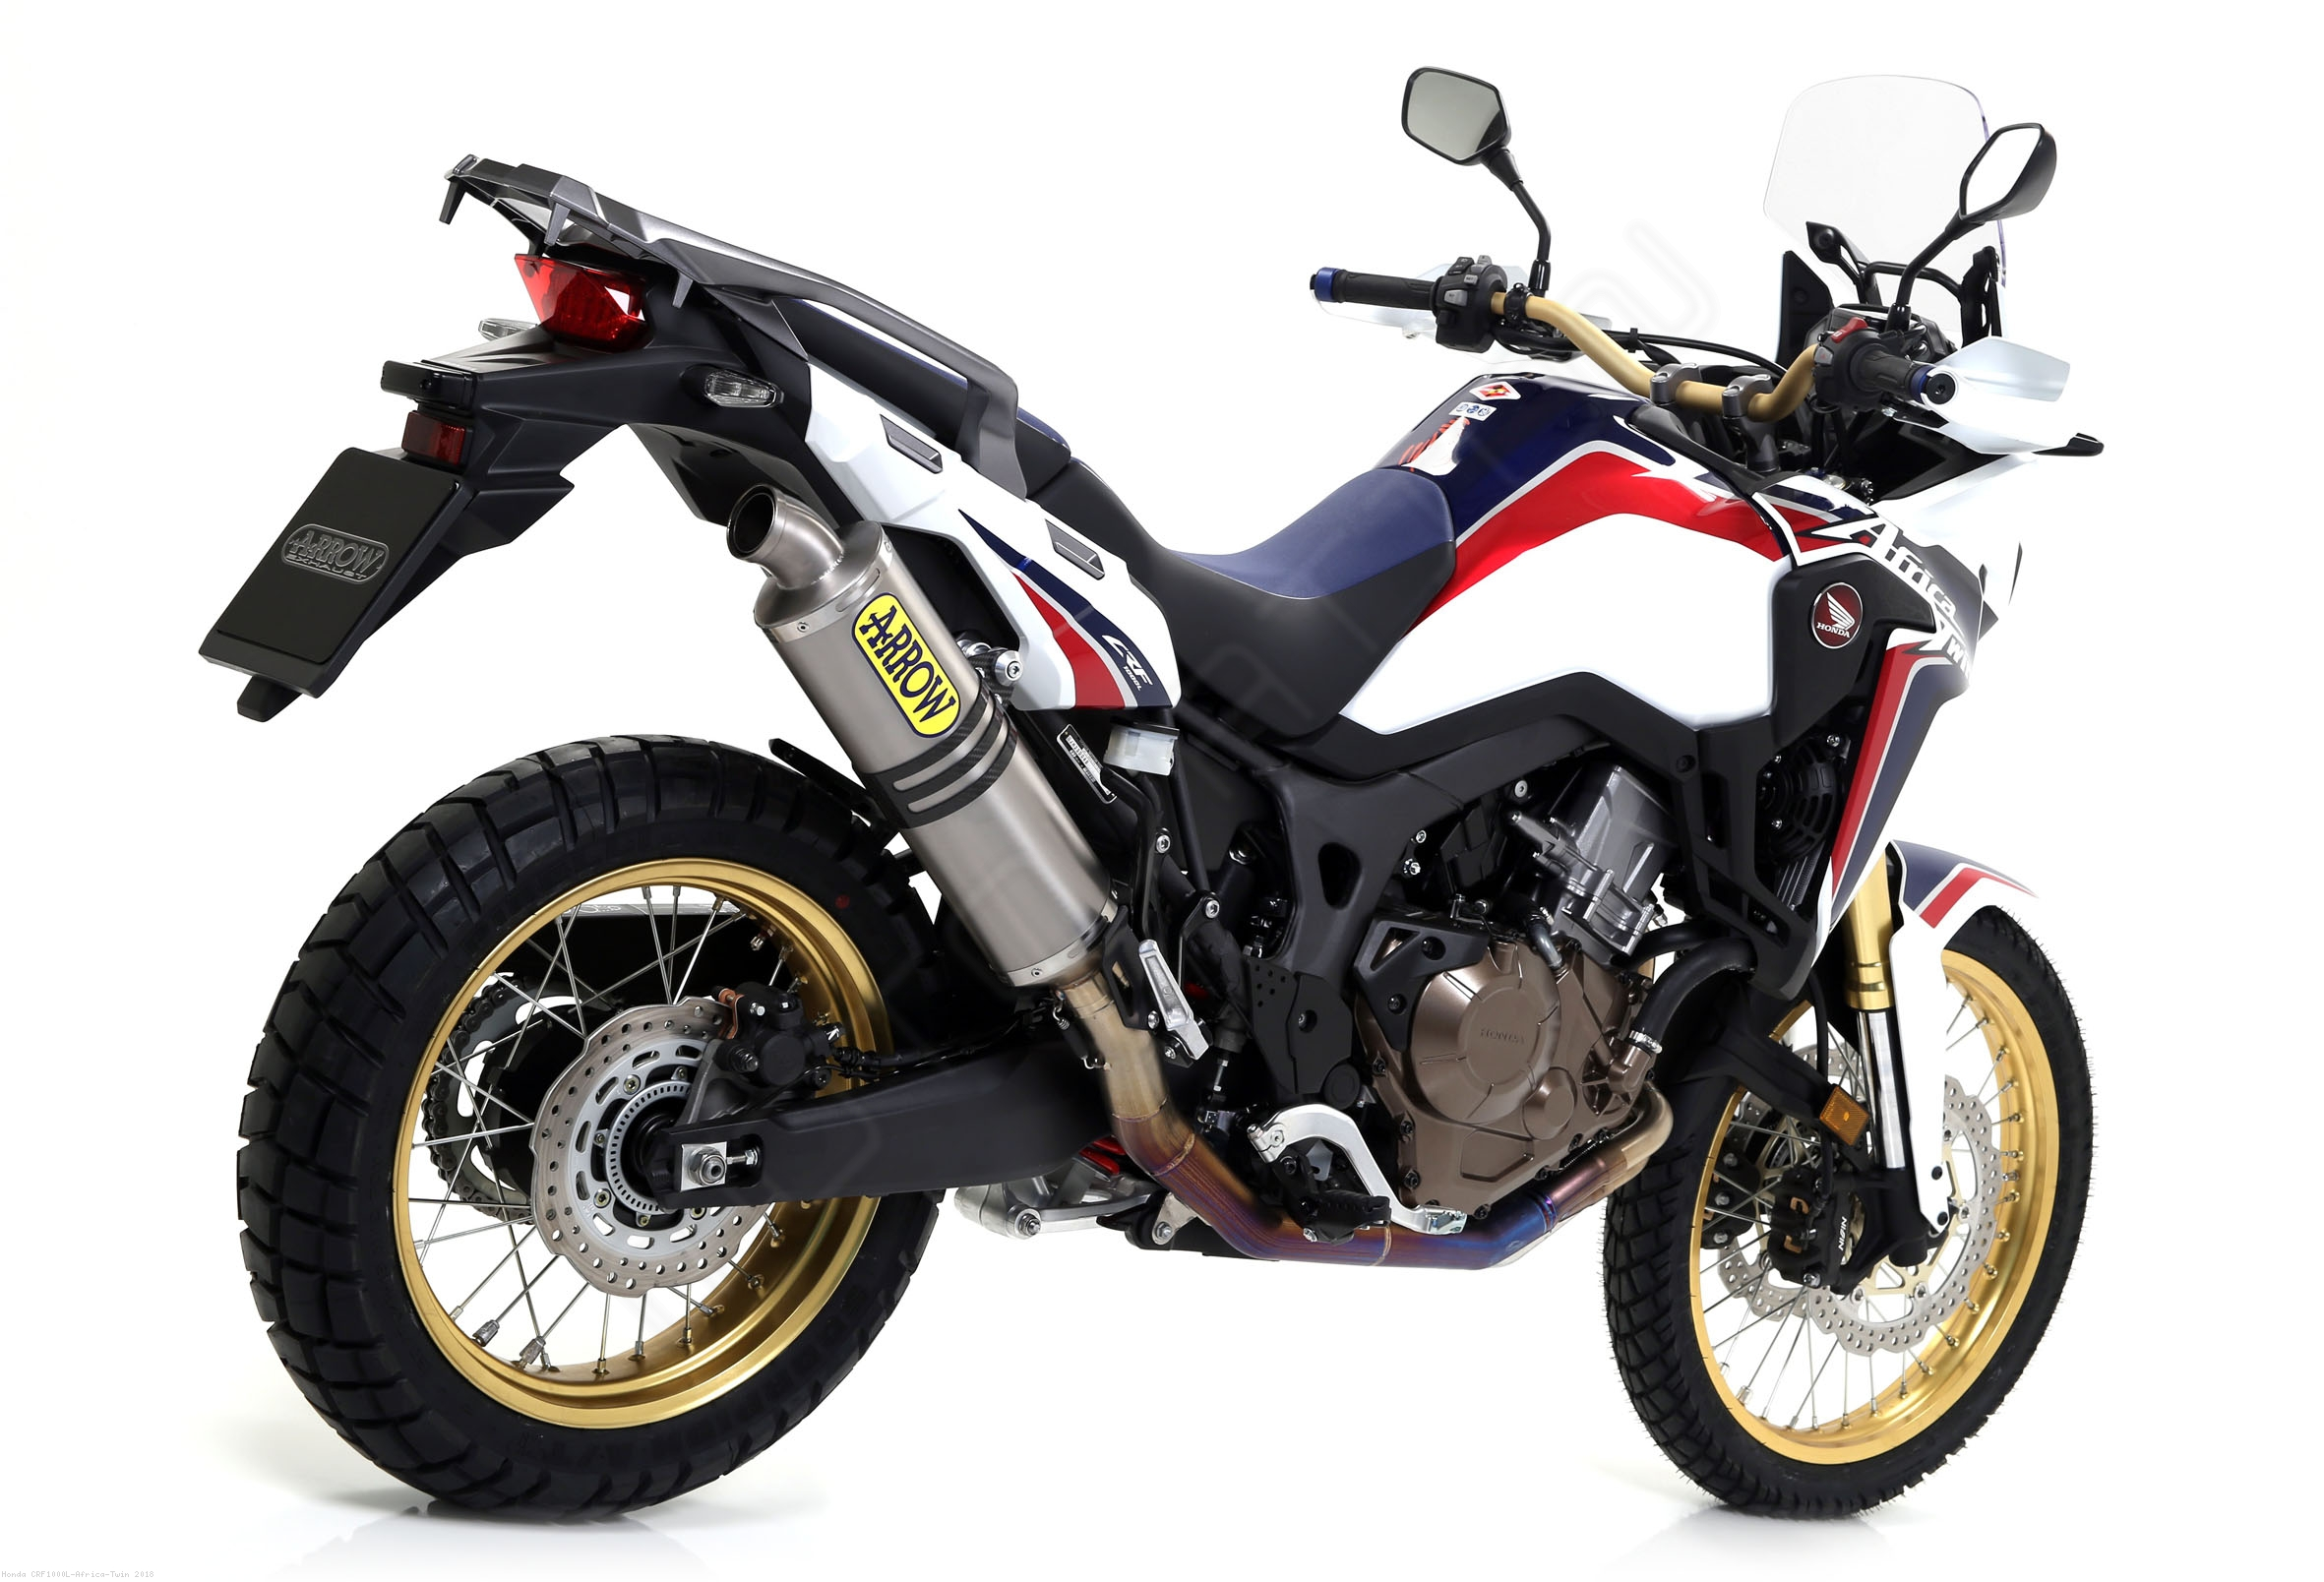 titanium racing full system exhaust by arrow honda crf1000l africa twin 2018 72021po. Black Bedroom Furniture Sets. Home Design Ideas